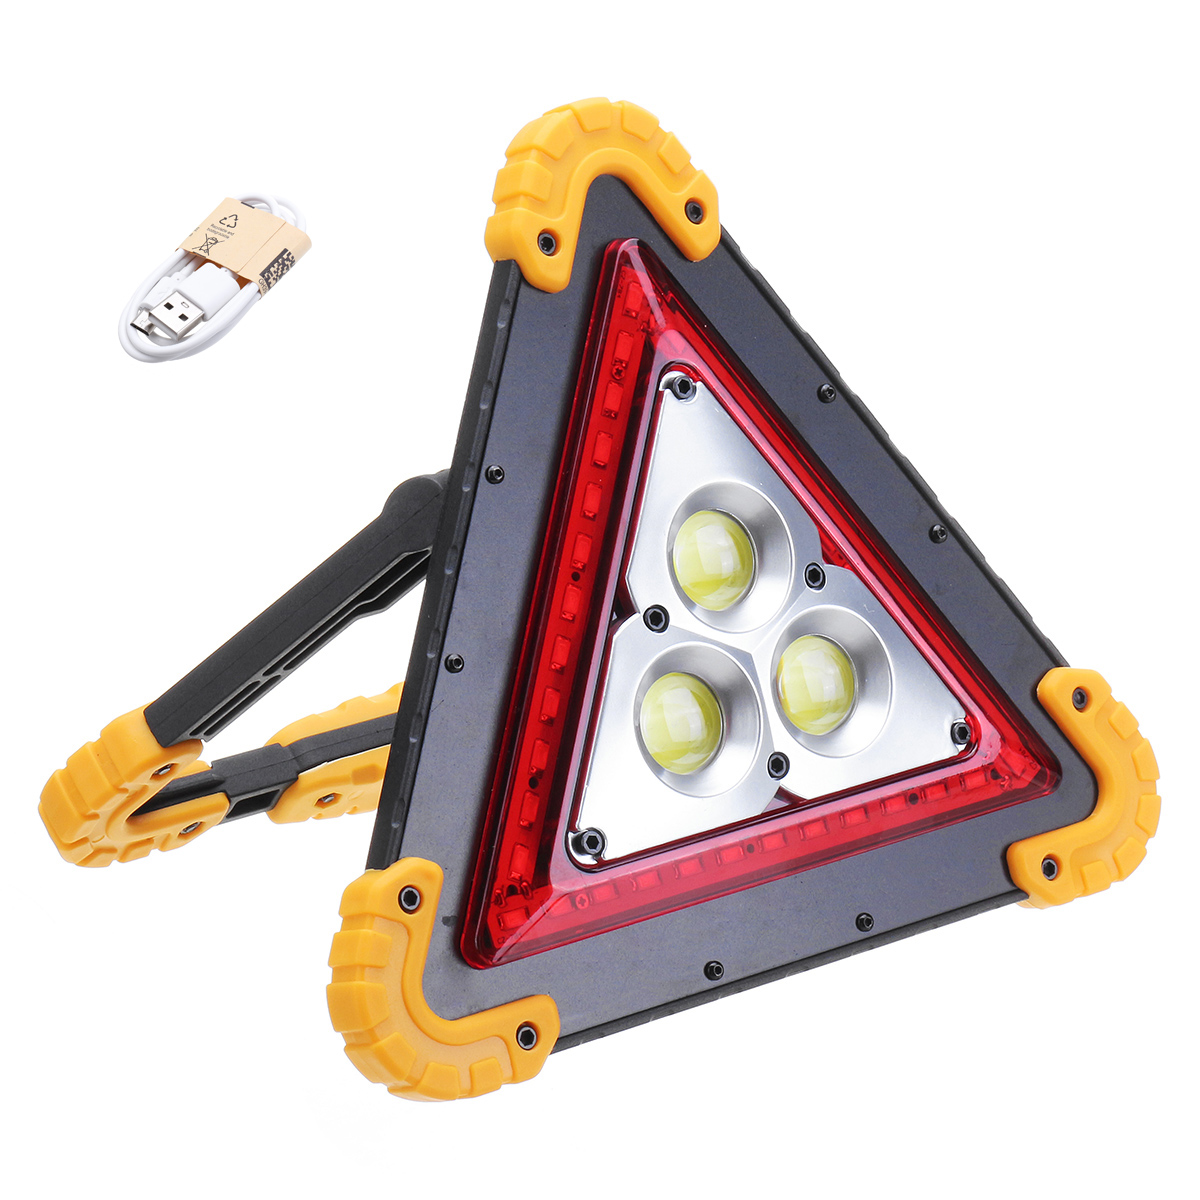 50W 36LED COB Work Light 4 Modes USB Rechargeable Outdoor Camping Lantern Tent Lamp